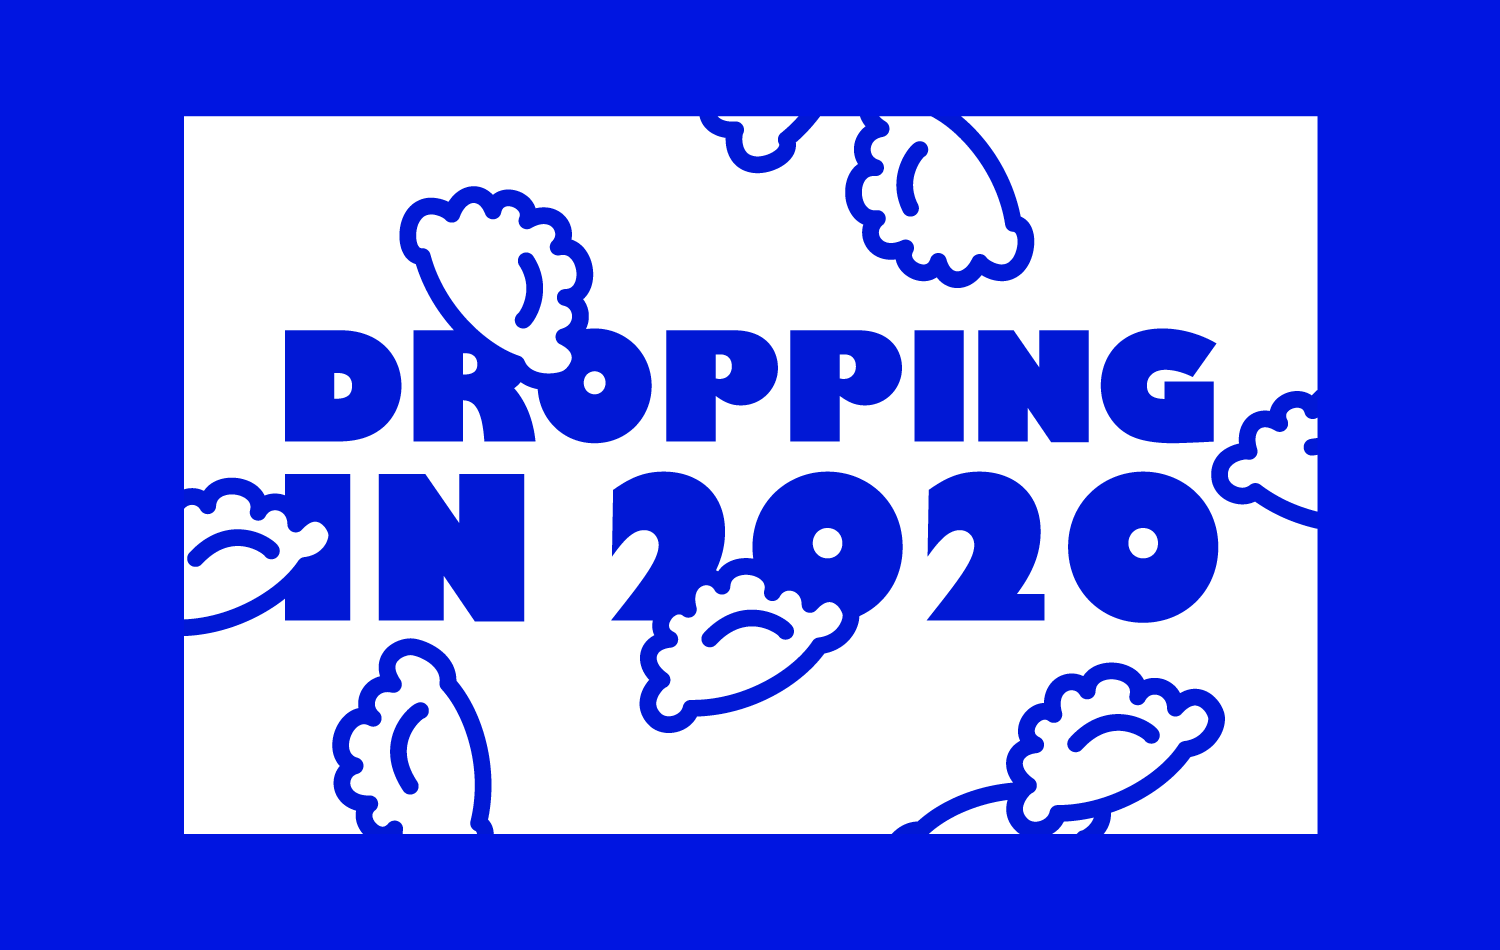 Dropping in 2020 Graphics